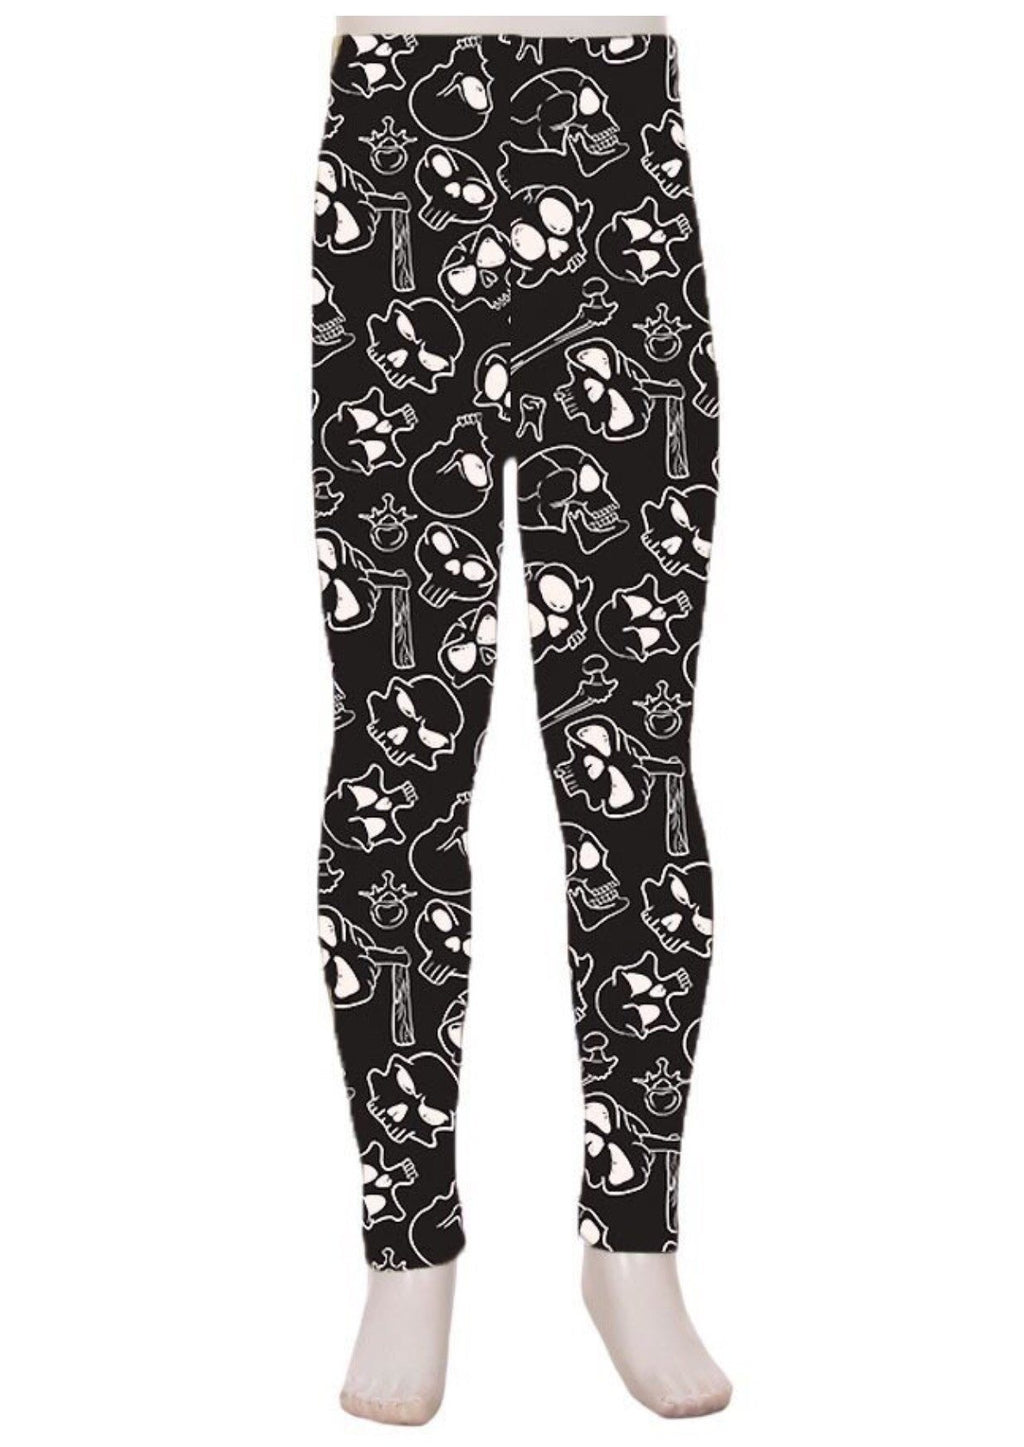 Leggings for Girls SKULLS & BONES PRINT, S/L